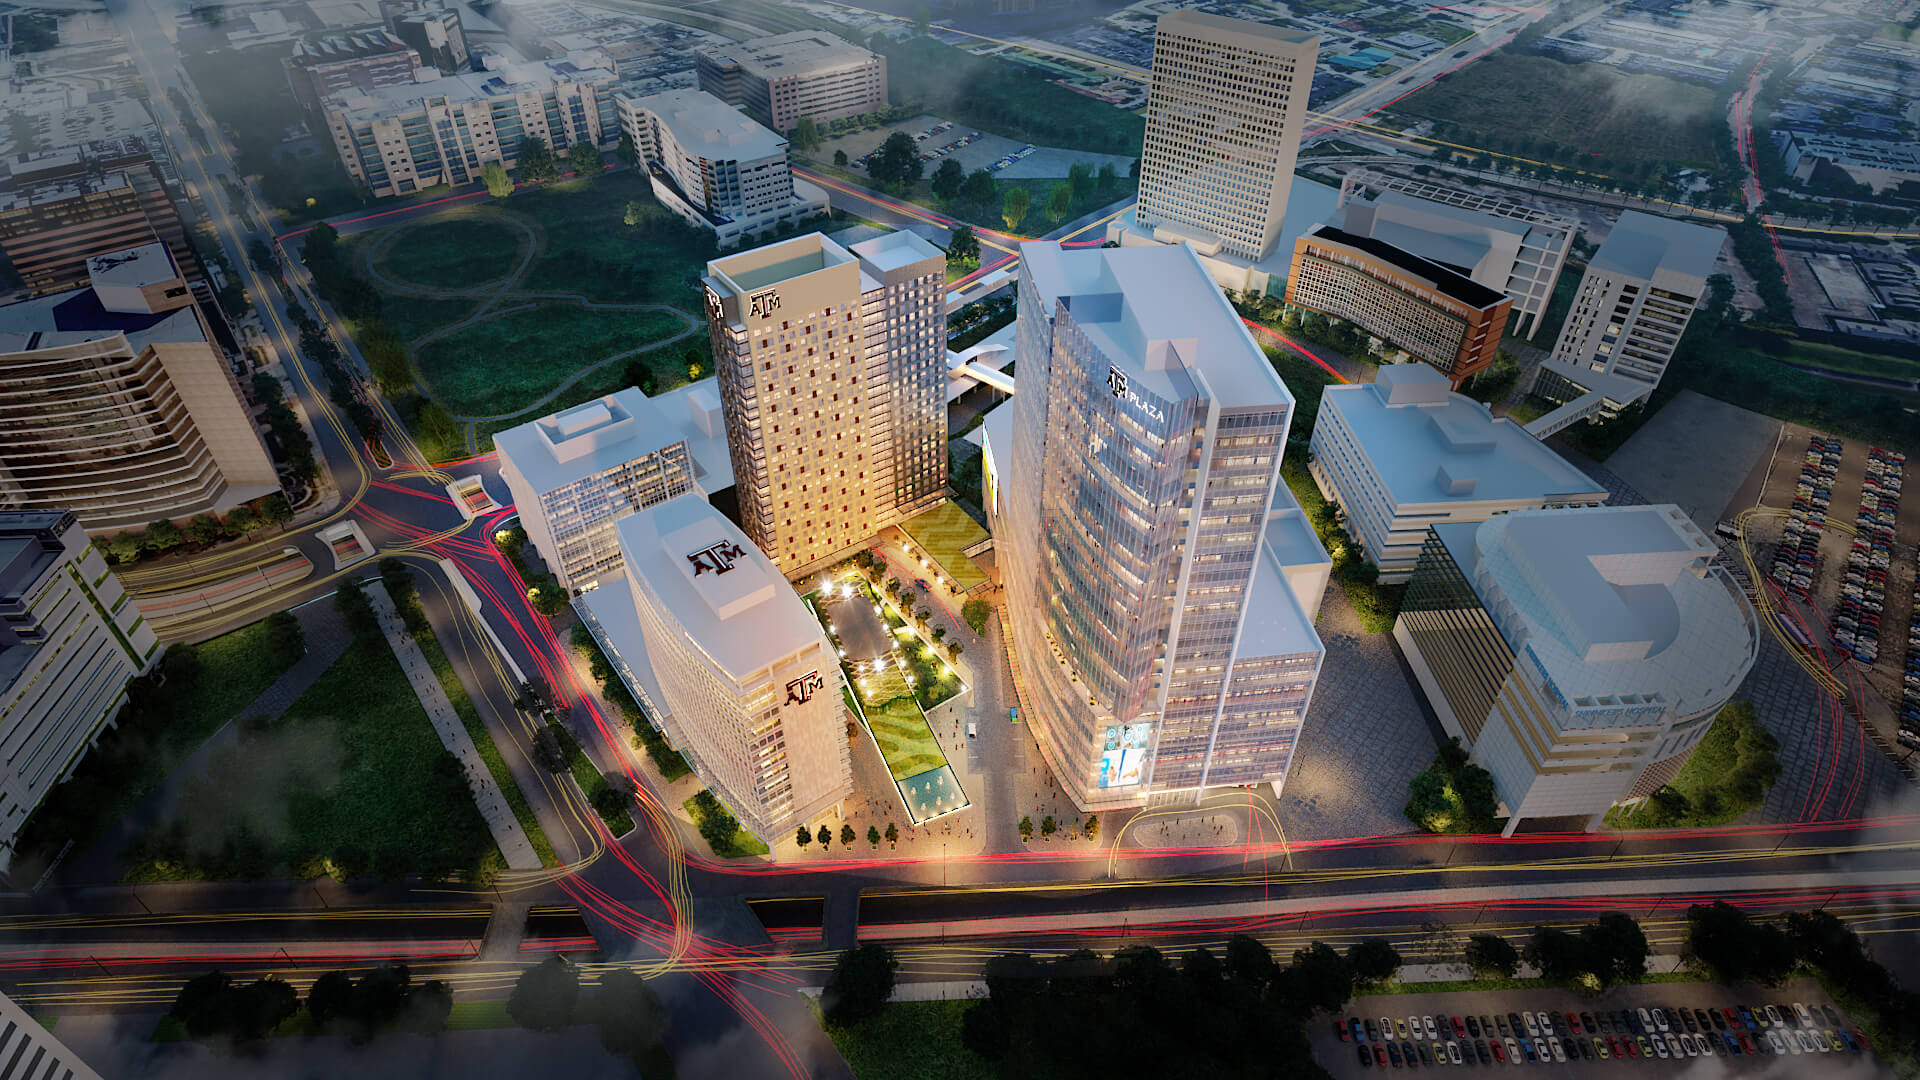 Aerial rendering of the Texas A&M University complex in Houston's Texas Medical Center announced on Feb. 20, 2020. (Courtesy photo)